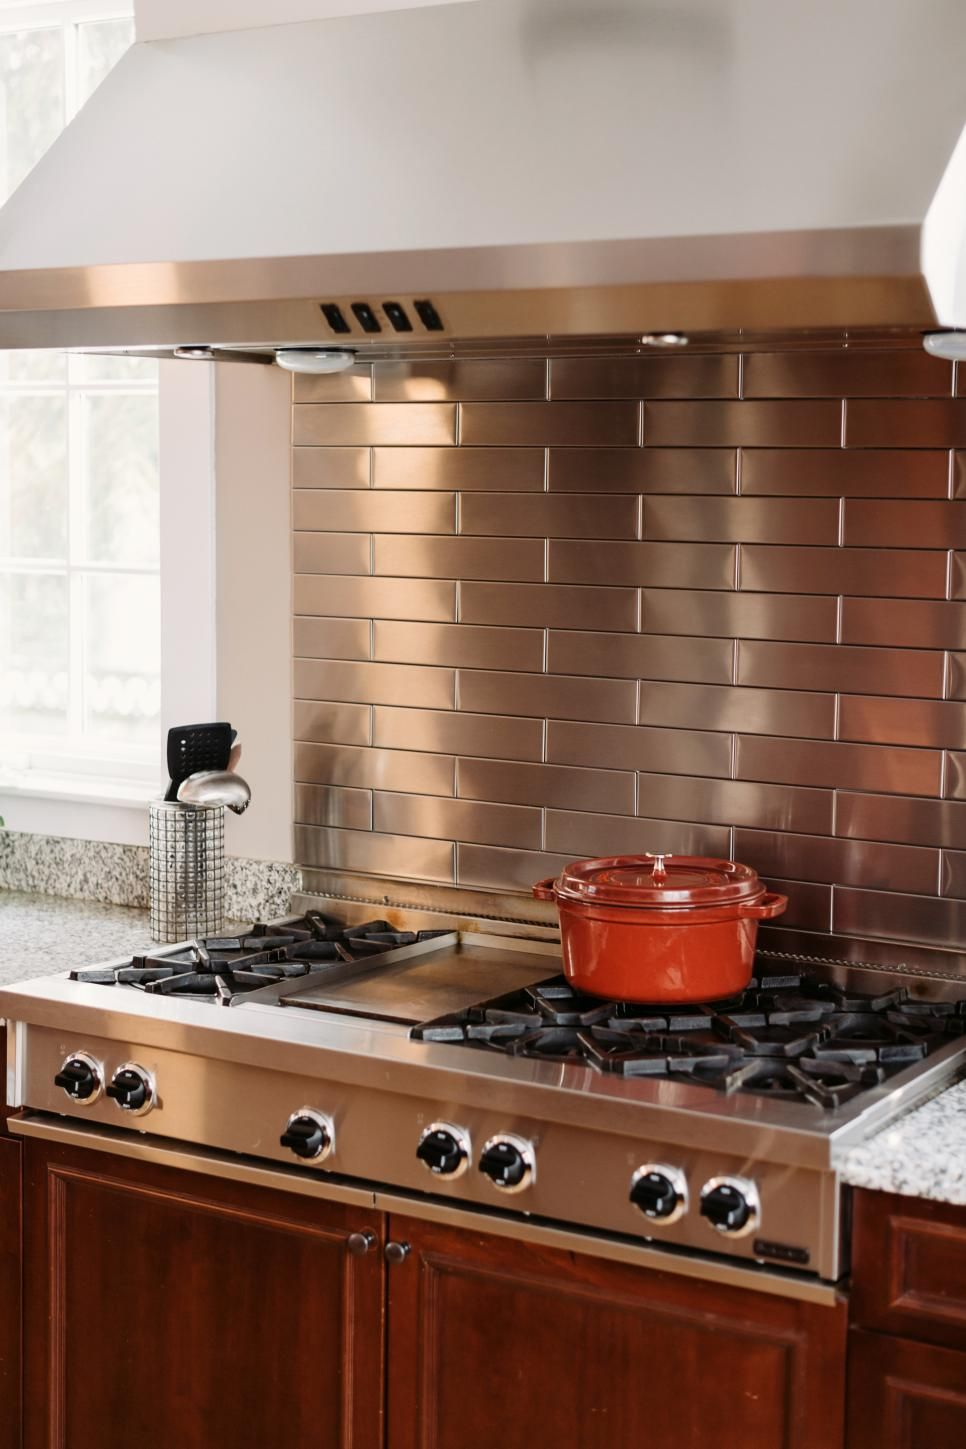 Stainless Steel Mosiac Tile Behind Stove Then Different Subway Tile Surround Stainless Backsplash Kitchen